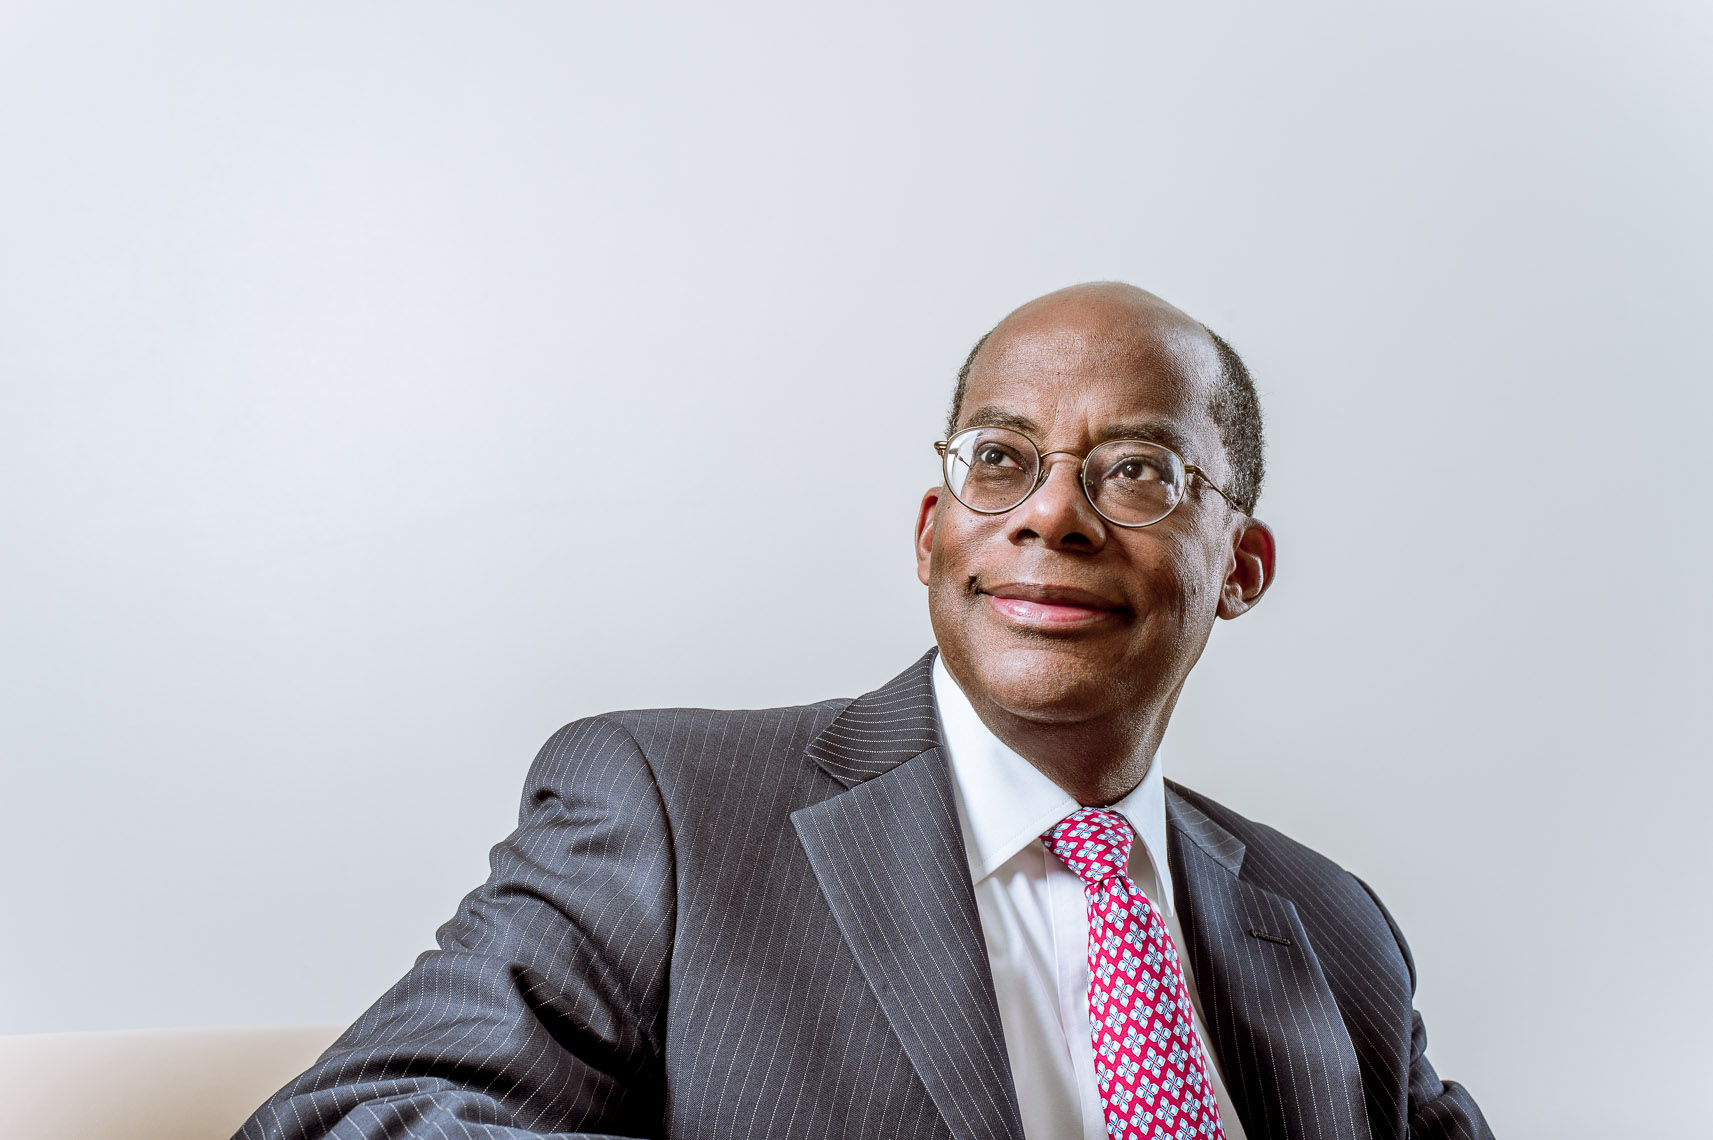 corporate-portrait-photography-business-philadelphia-ferguson-ceo-tiaa-barron-082